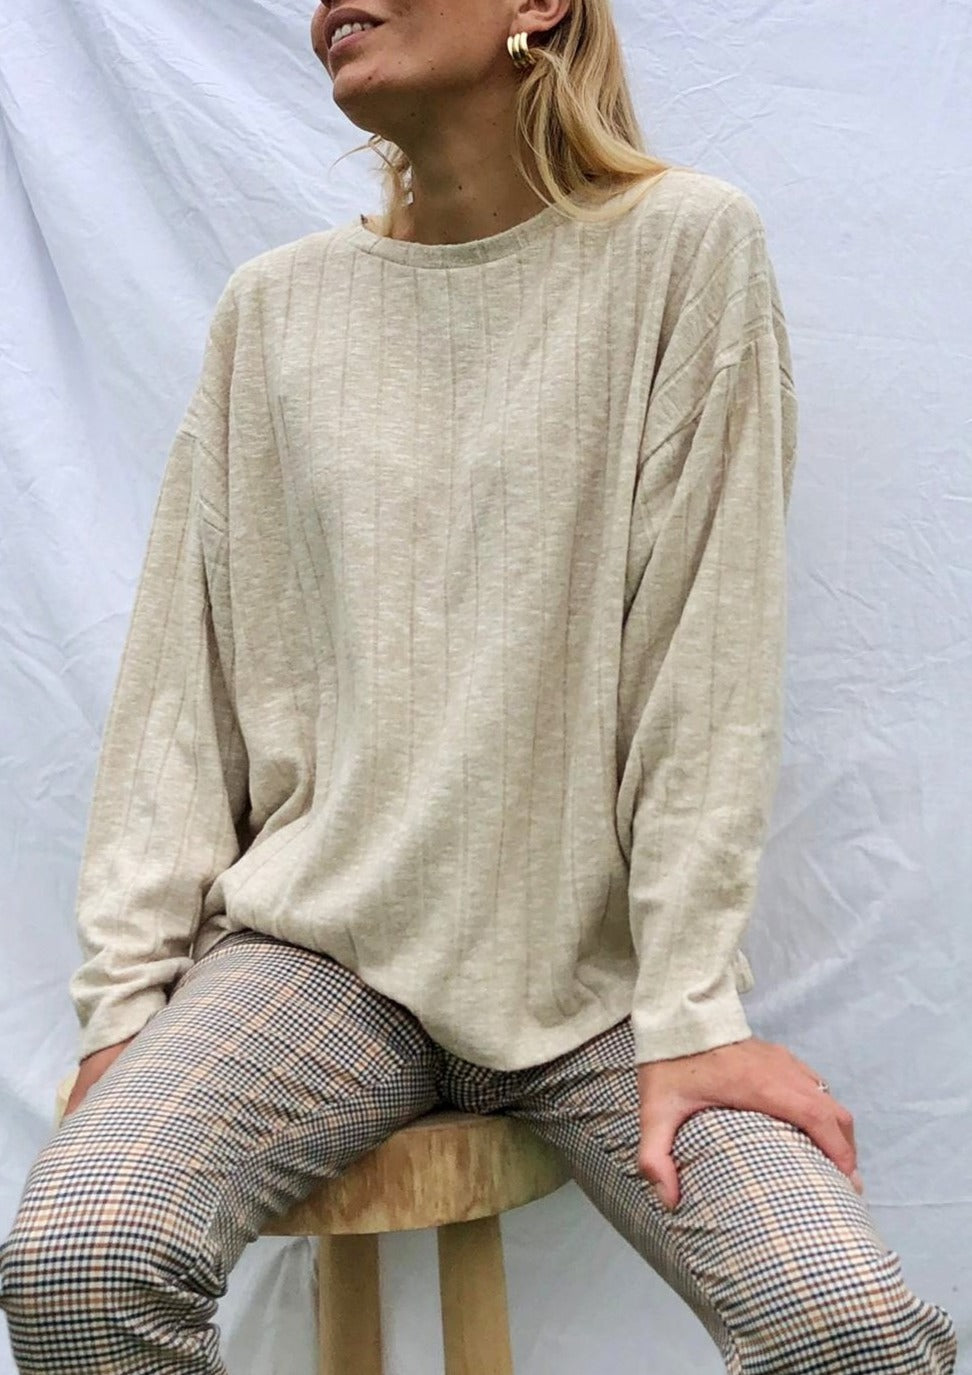 The Basic Sweatshirt - Beige